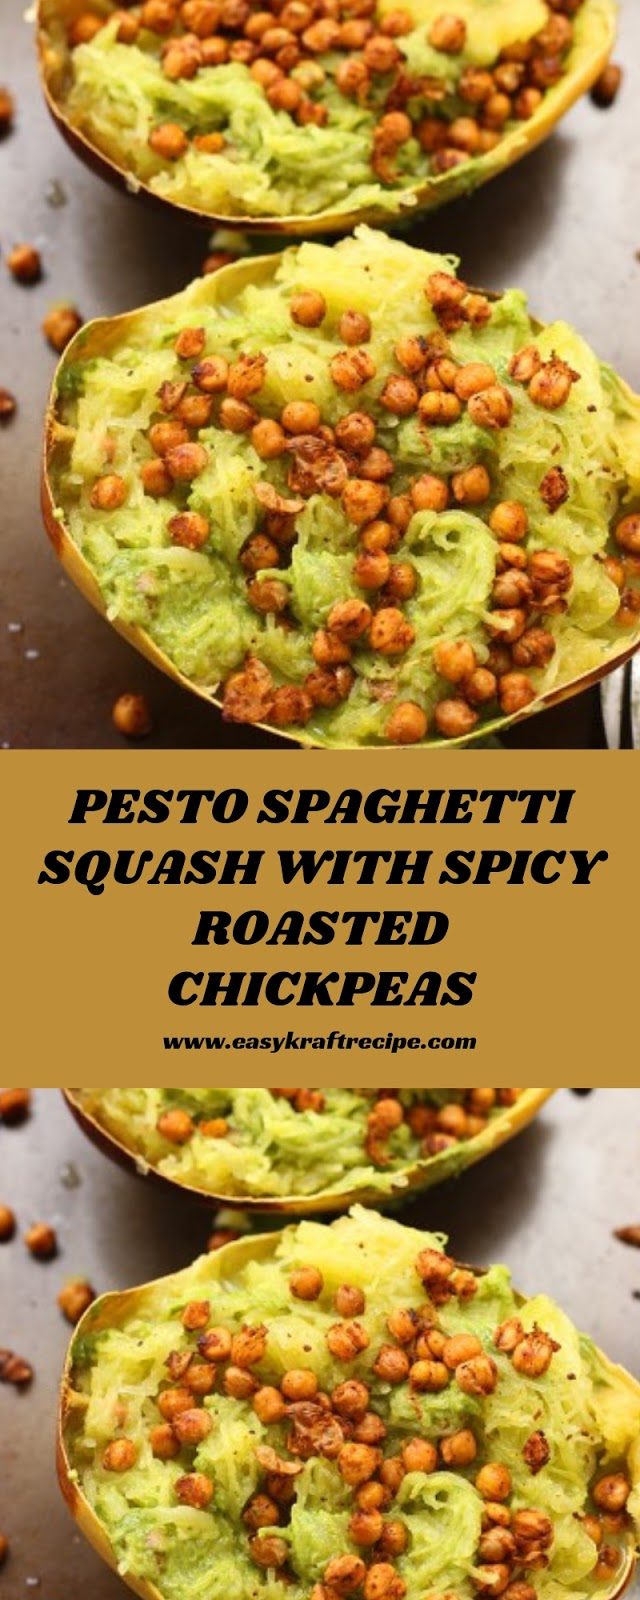 PESTO SPAGHETTI SQUASH WITH SPICY ROASTED CHICKPEAS